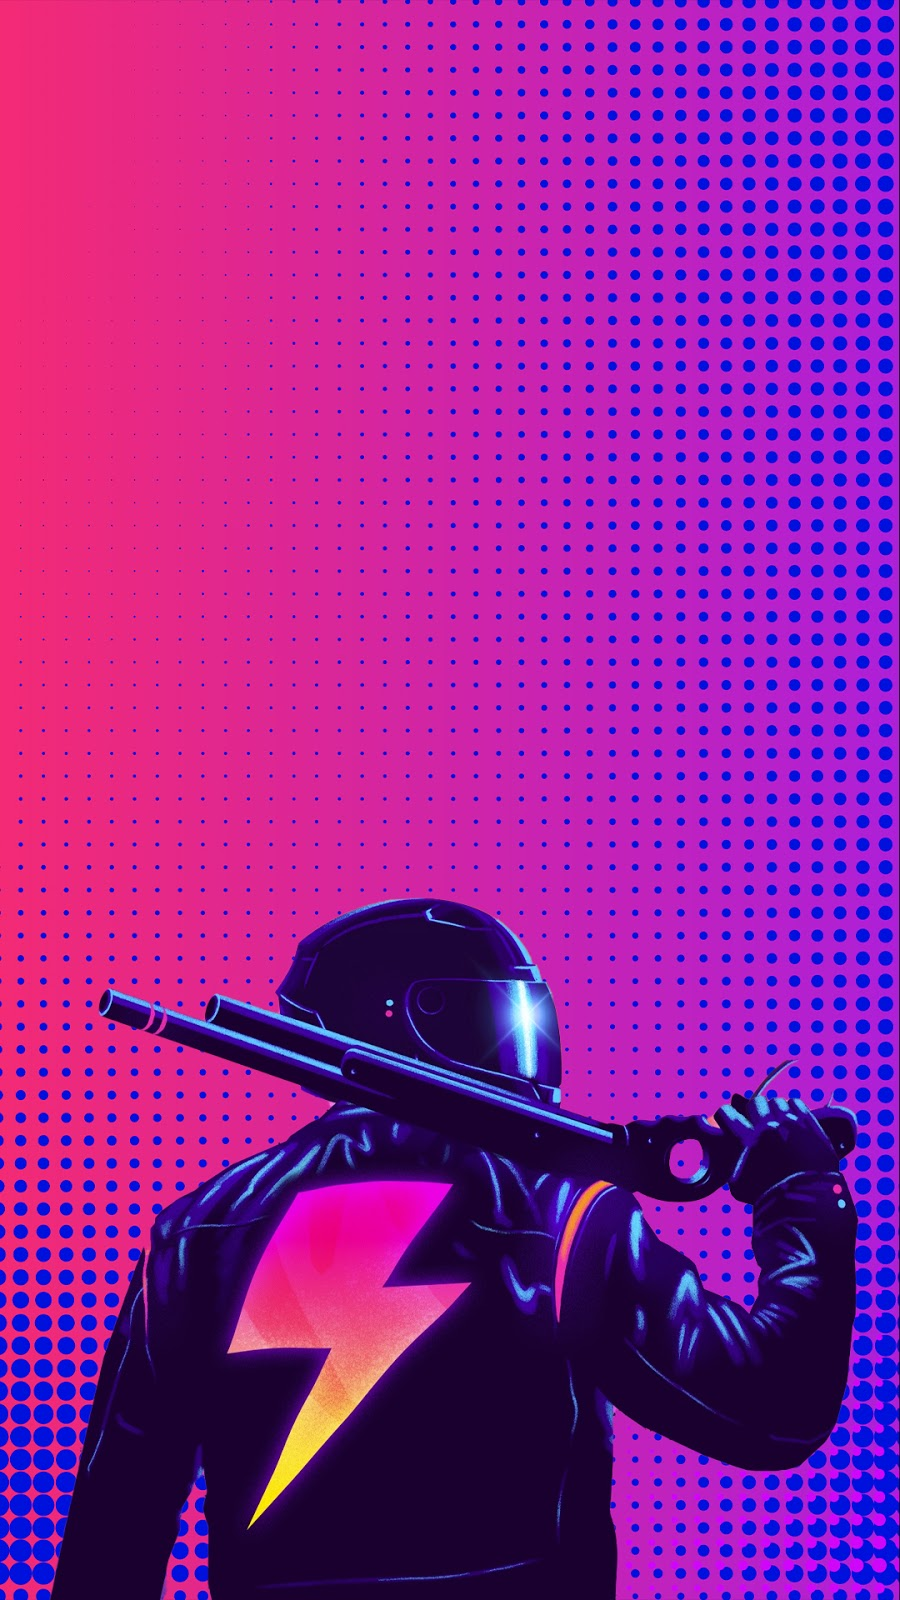 cyberpunk gun pink purple background phone wallpaper in 1080p